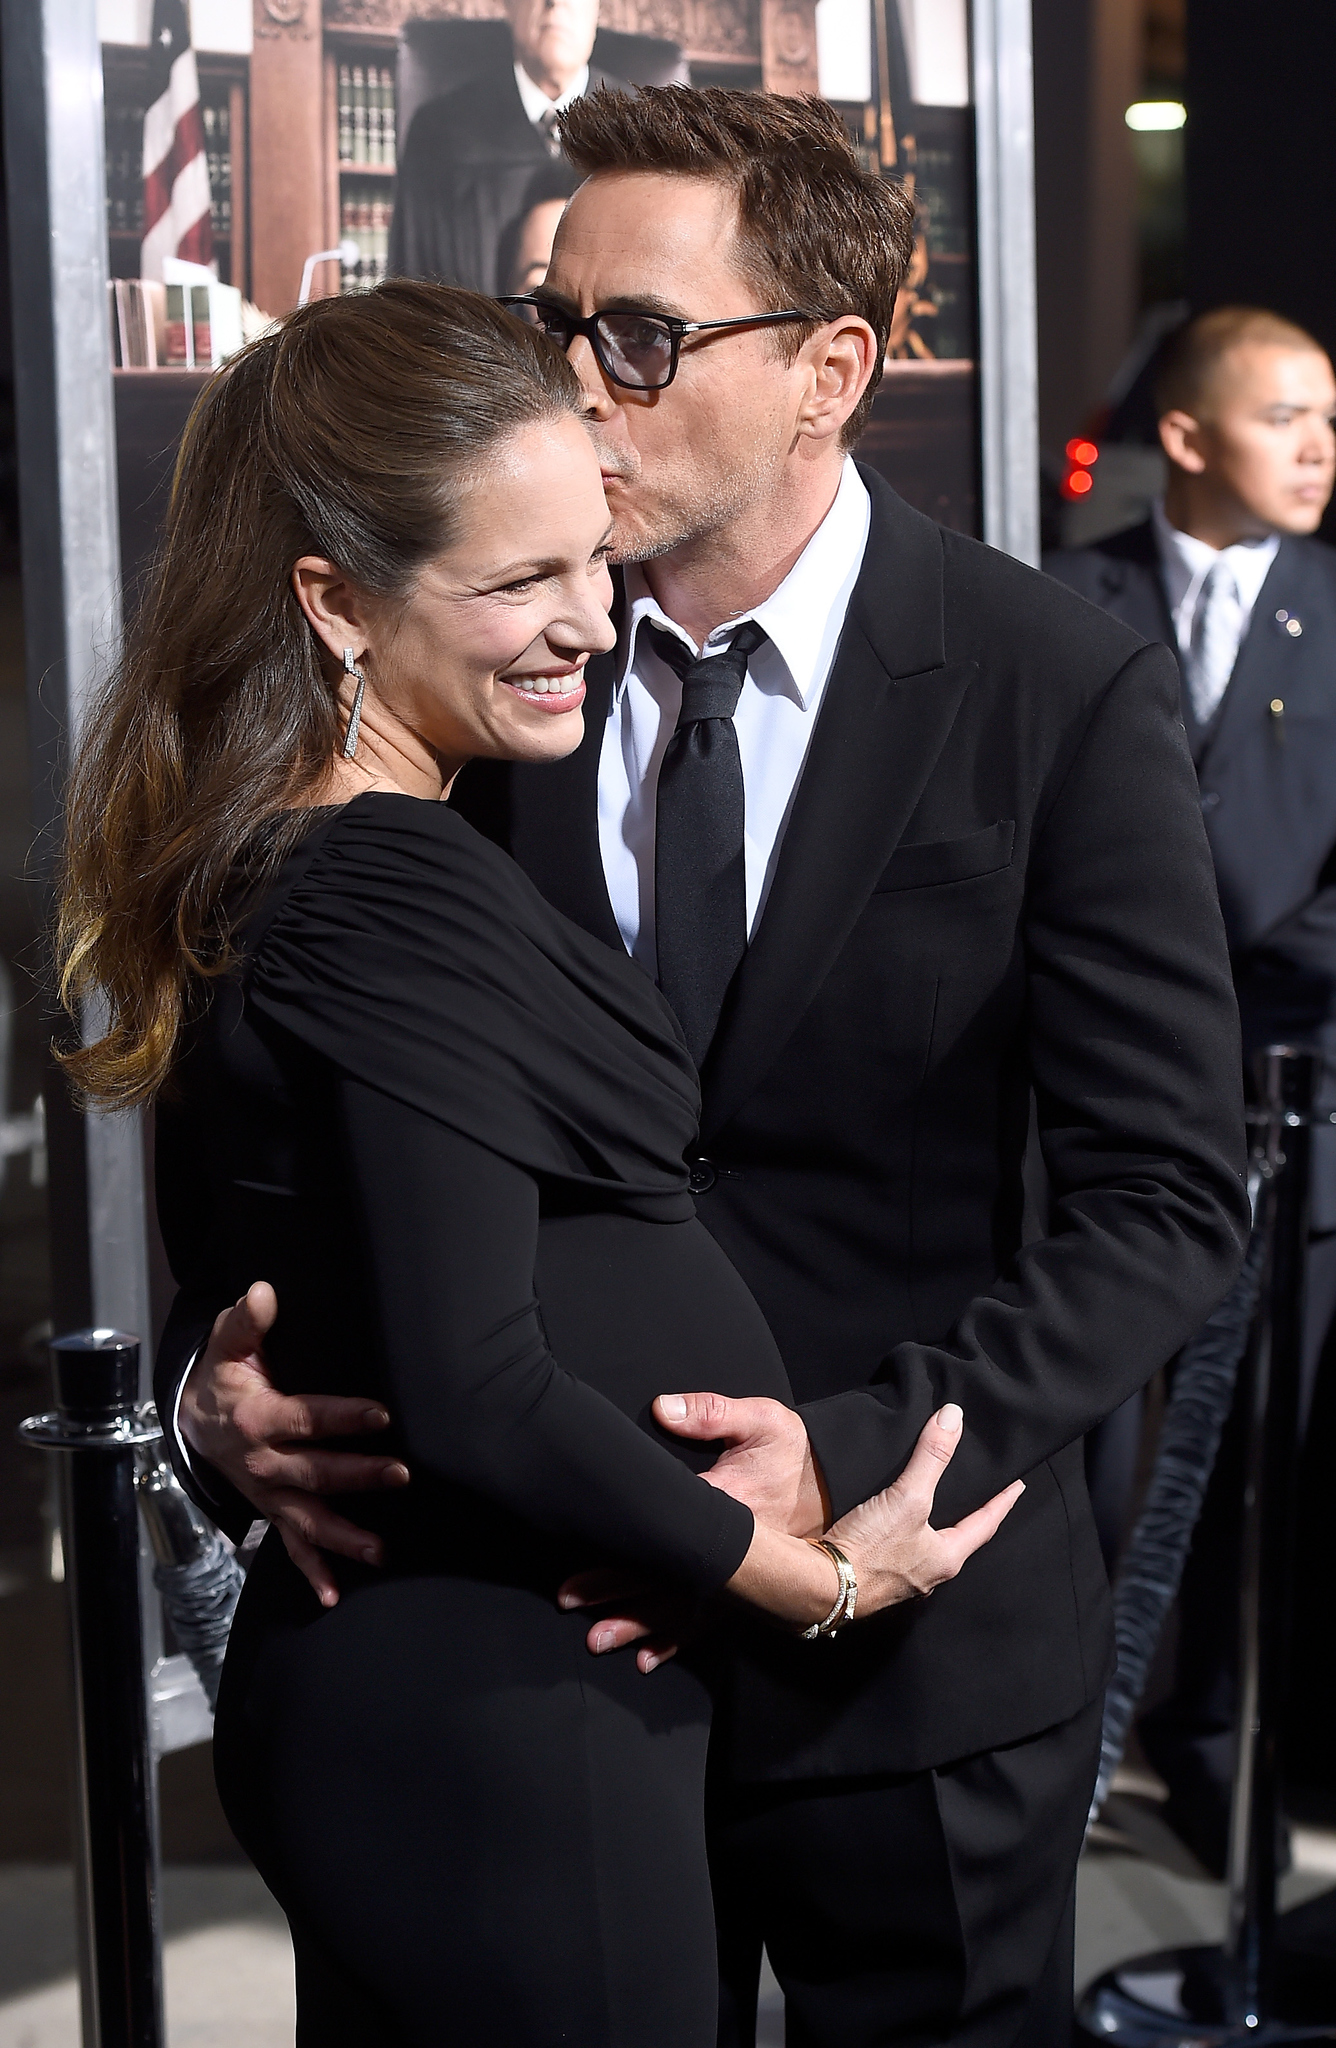 Robert Downey Jr. and Susan Downey at event of Teisejas (2014)